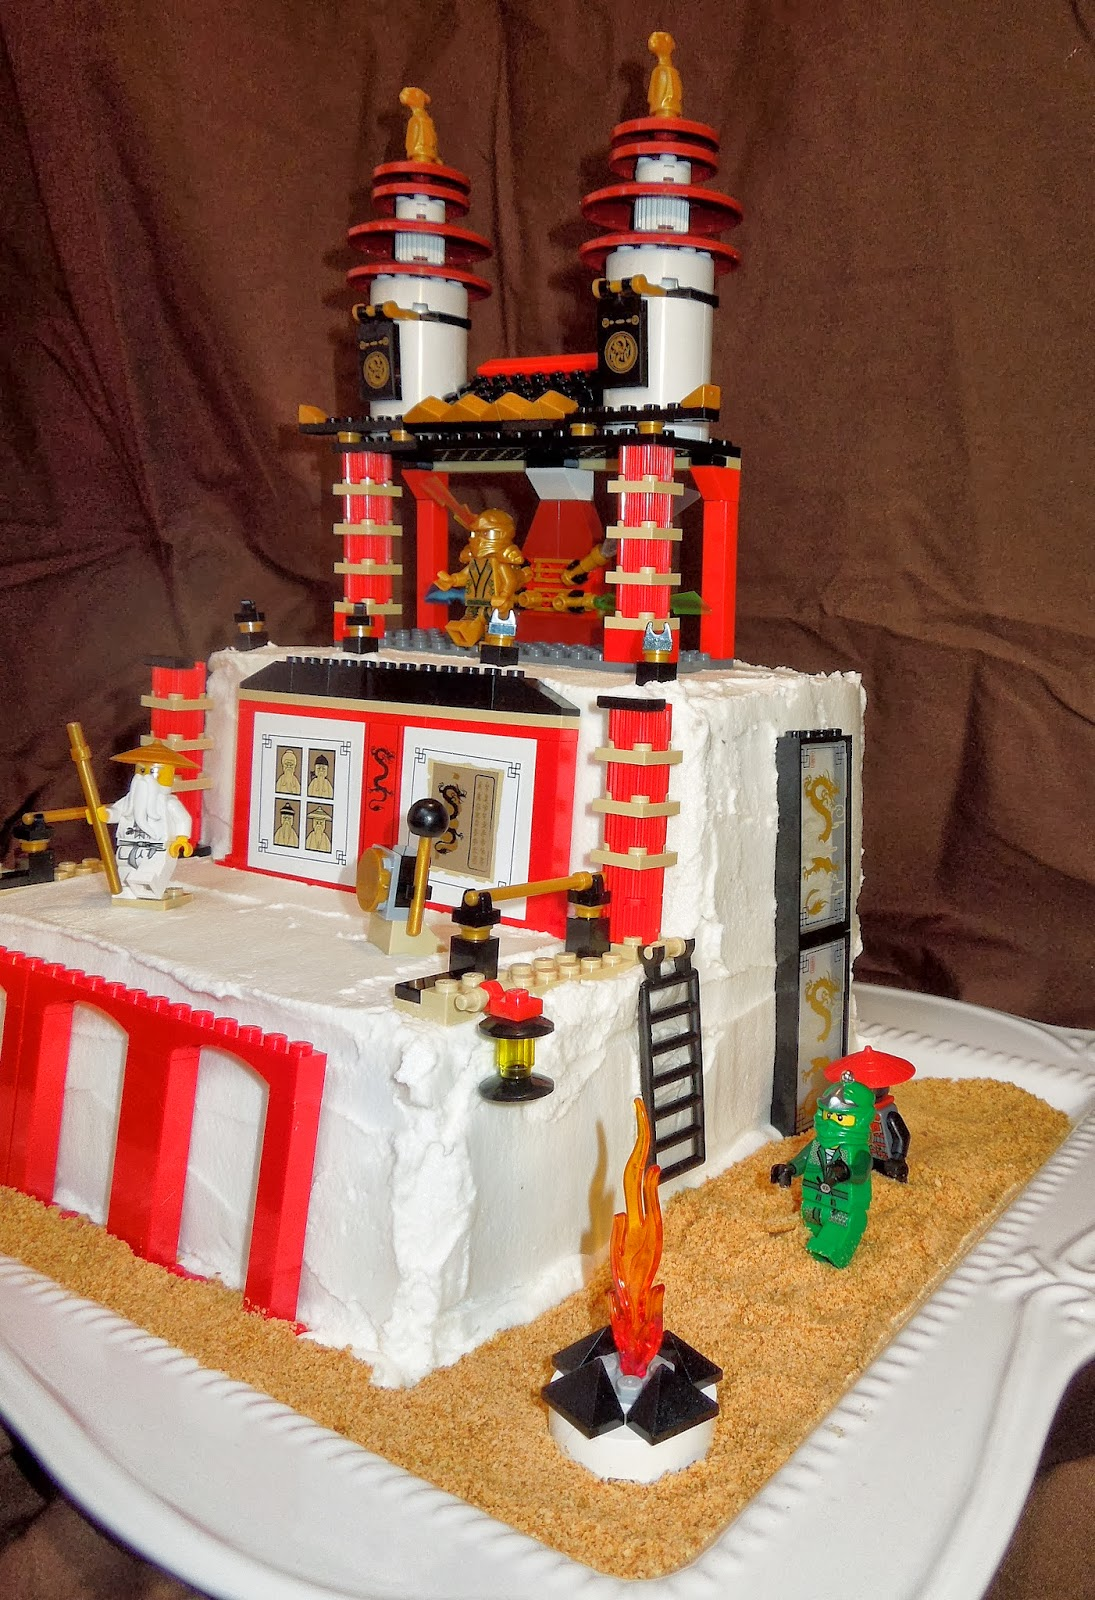 Lego Ninjago 174 Birthday Cake Gluten And Top 8 Allergy